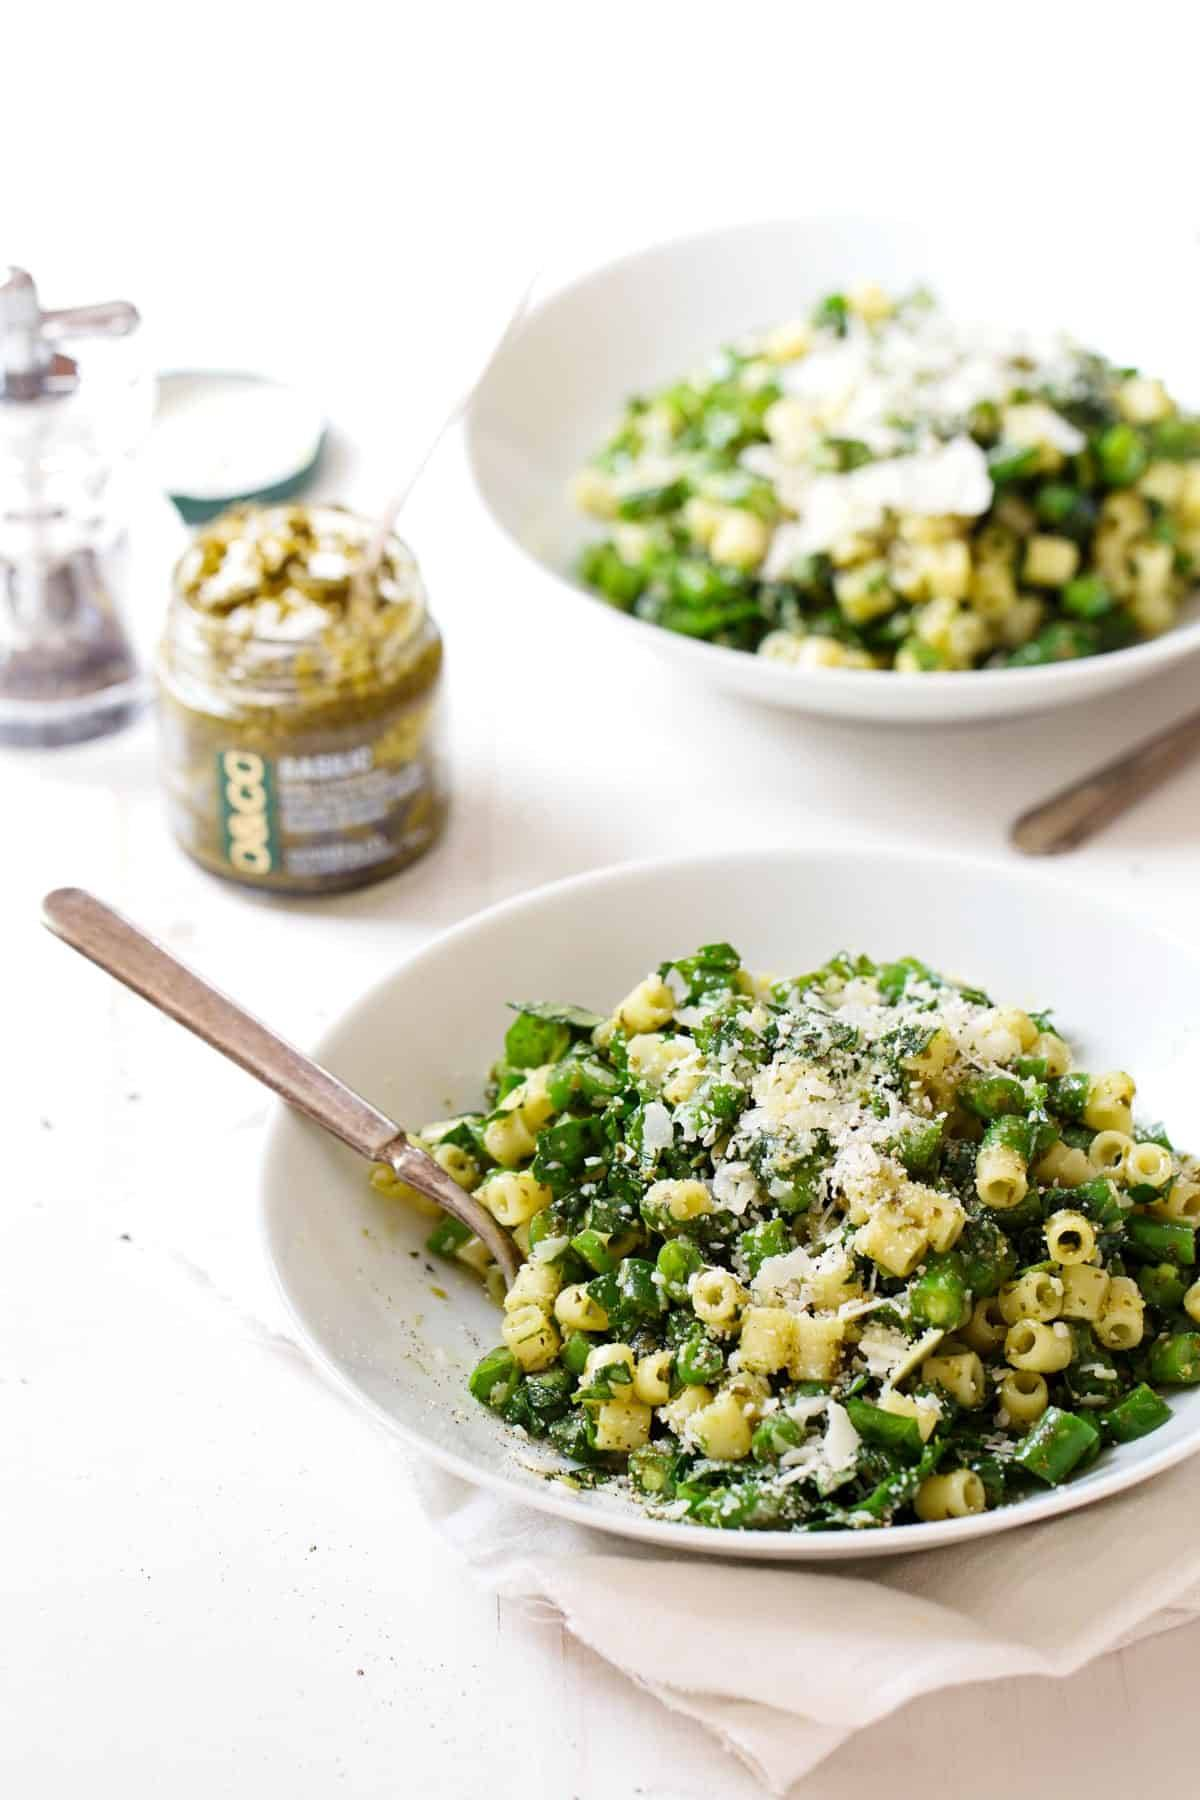 Green Pasta Salad on two plates.